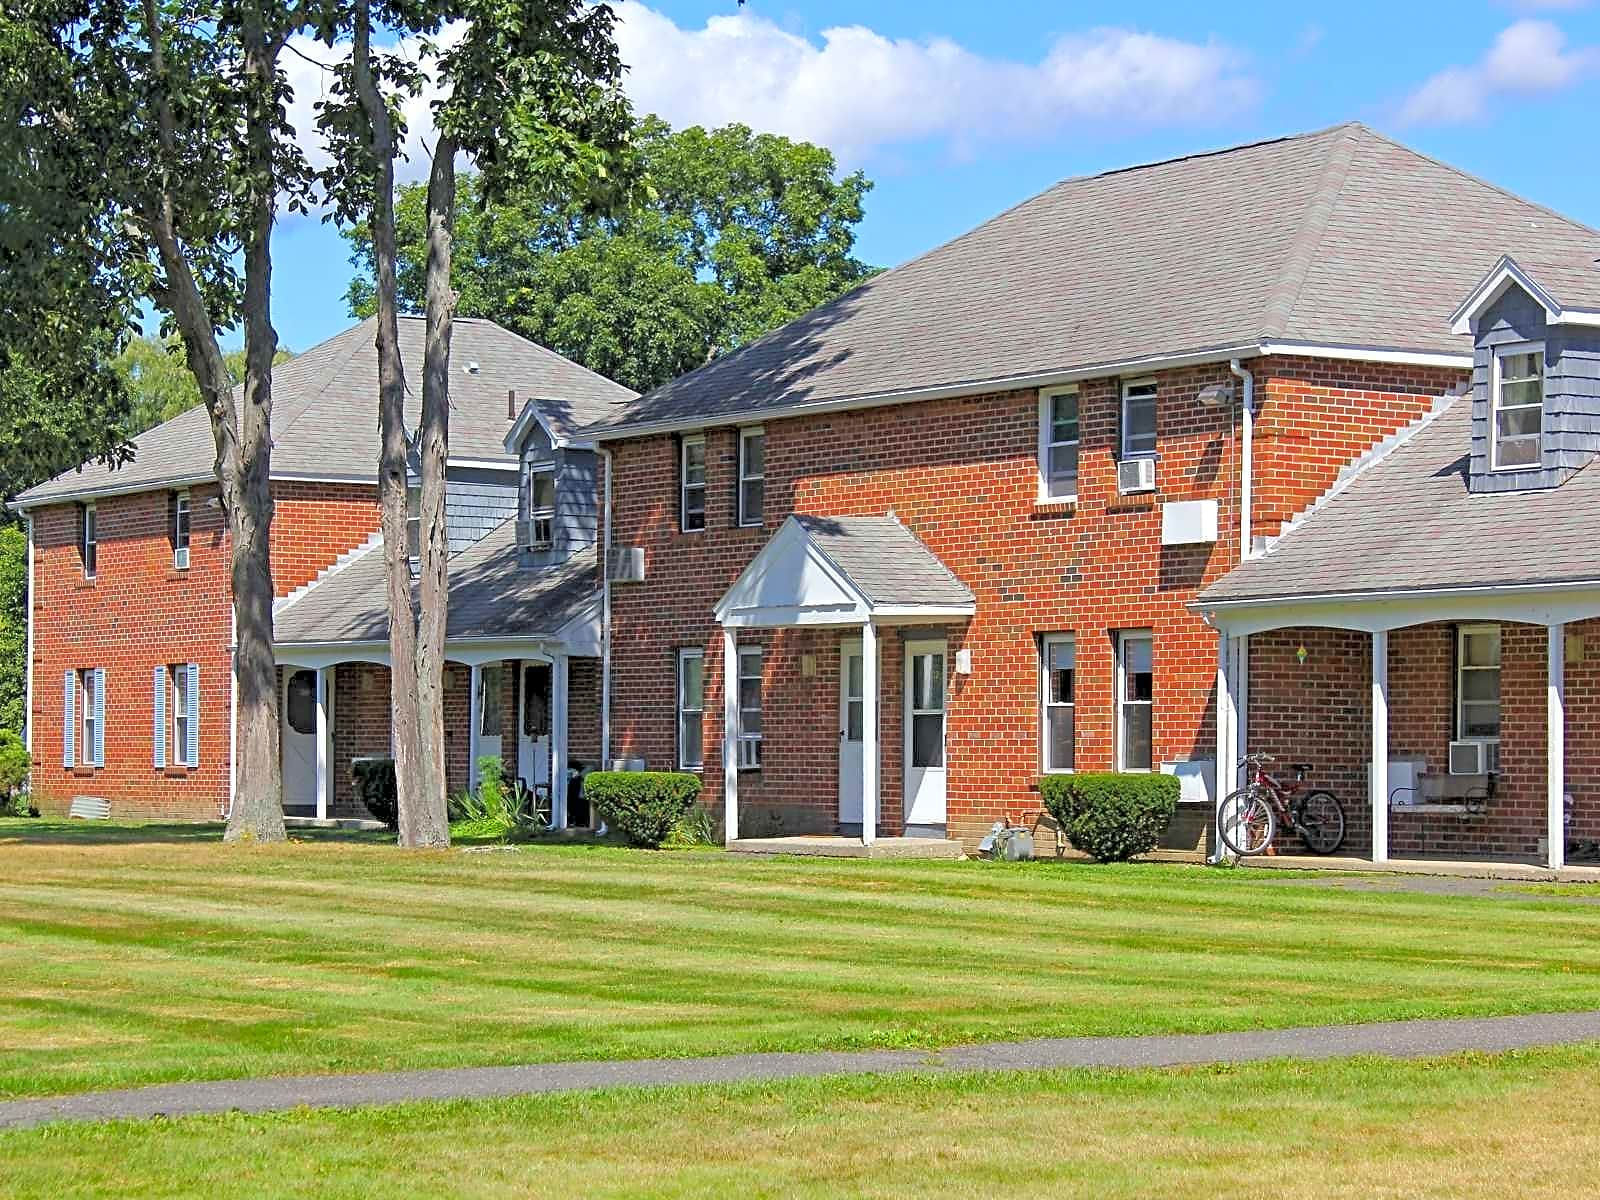 Apartments Near Amherst Southpoint Apartments for Amherst College Students in Amherst, MA